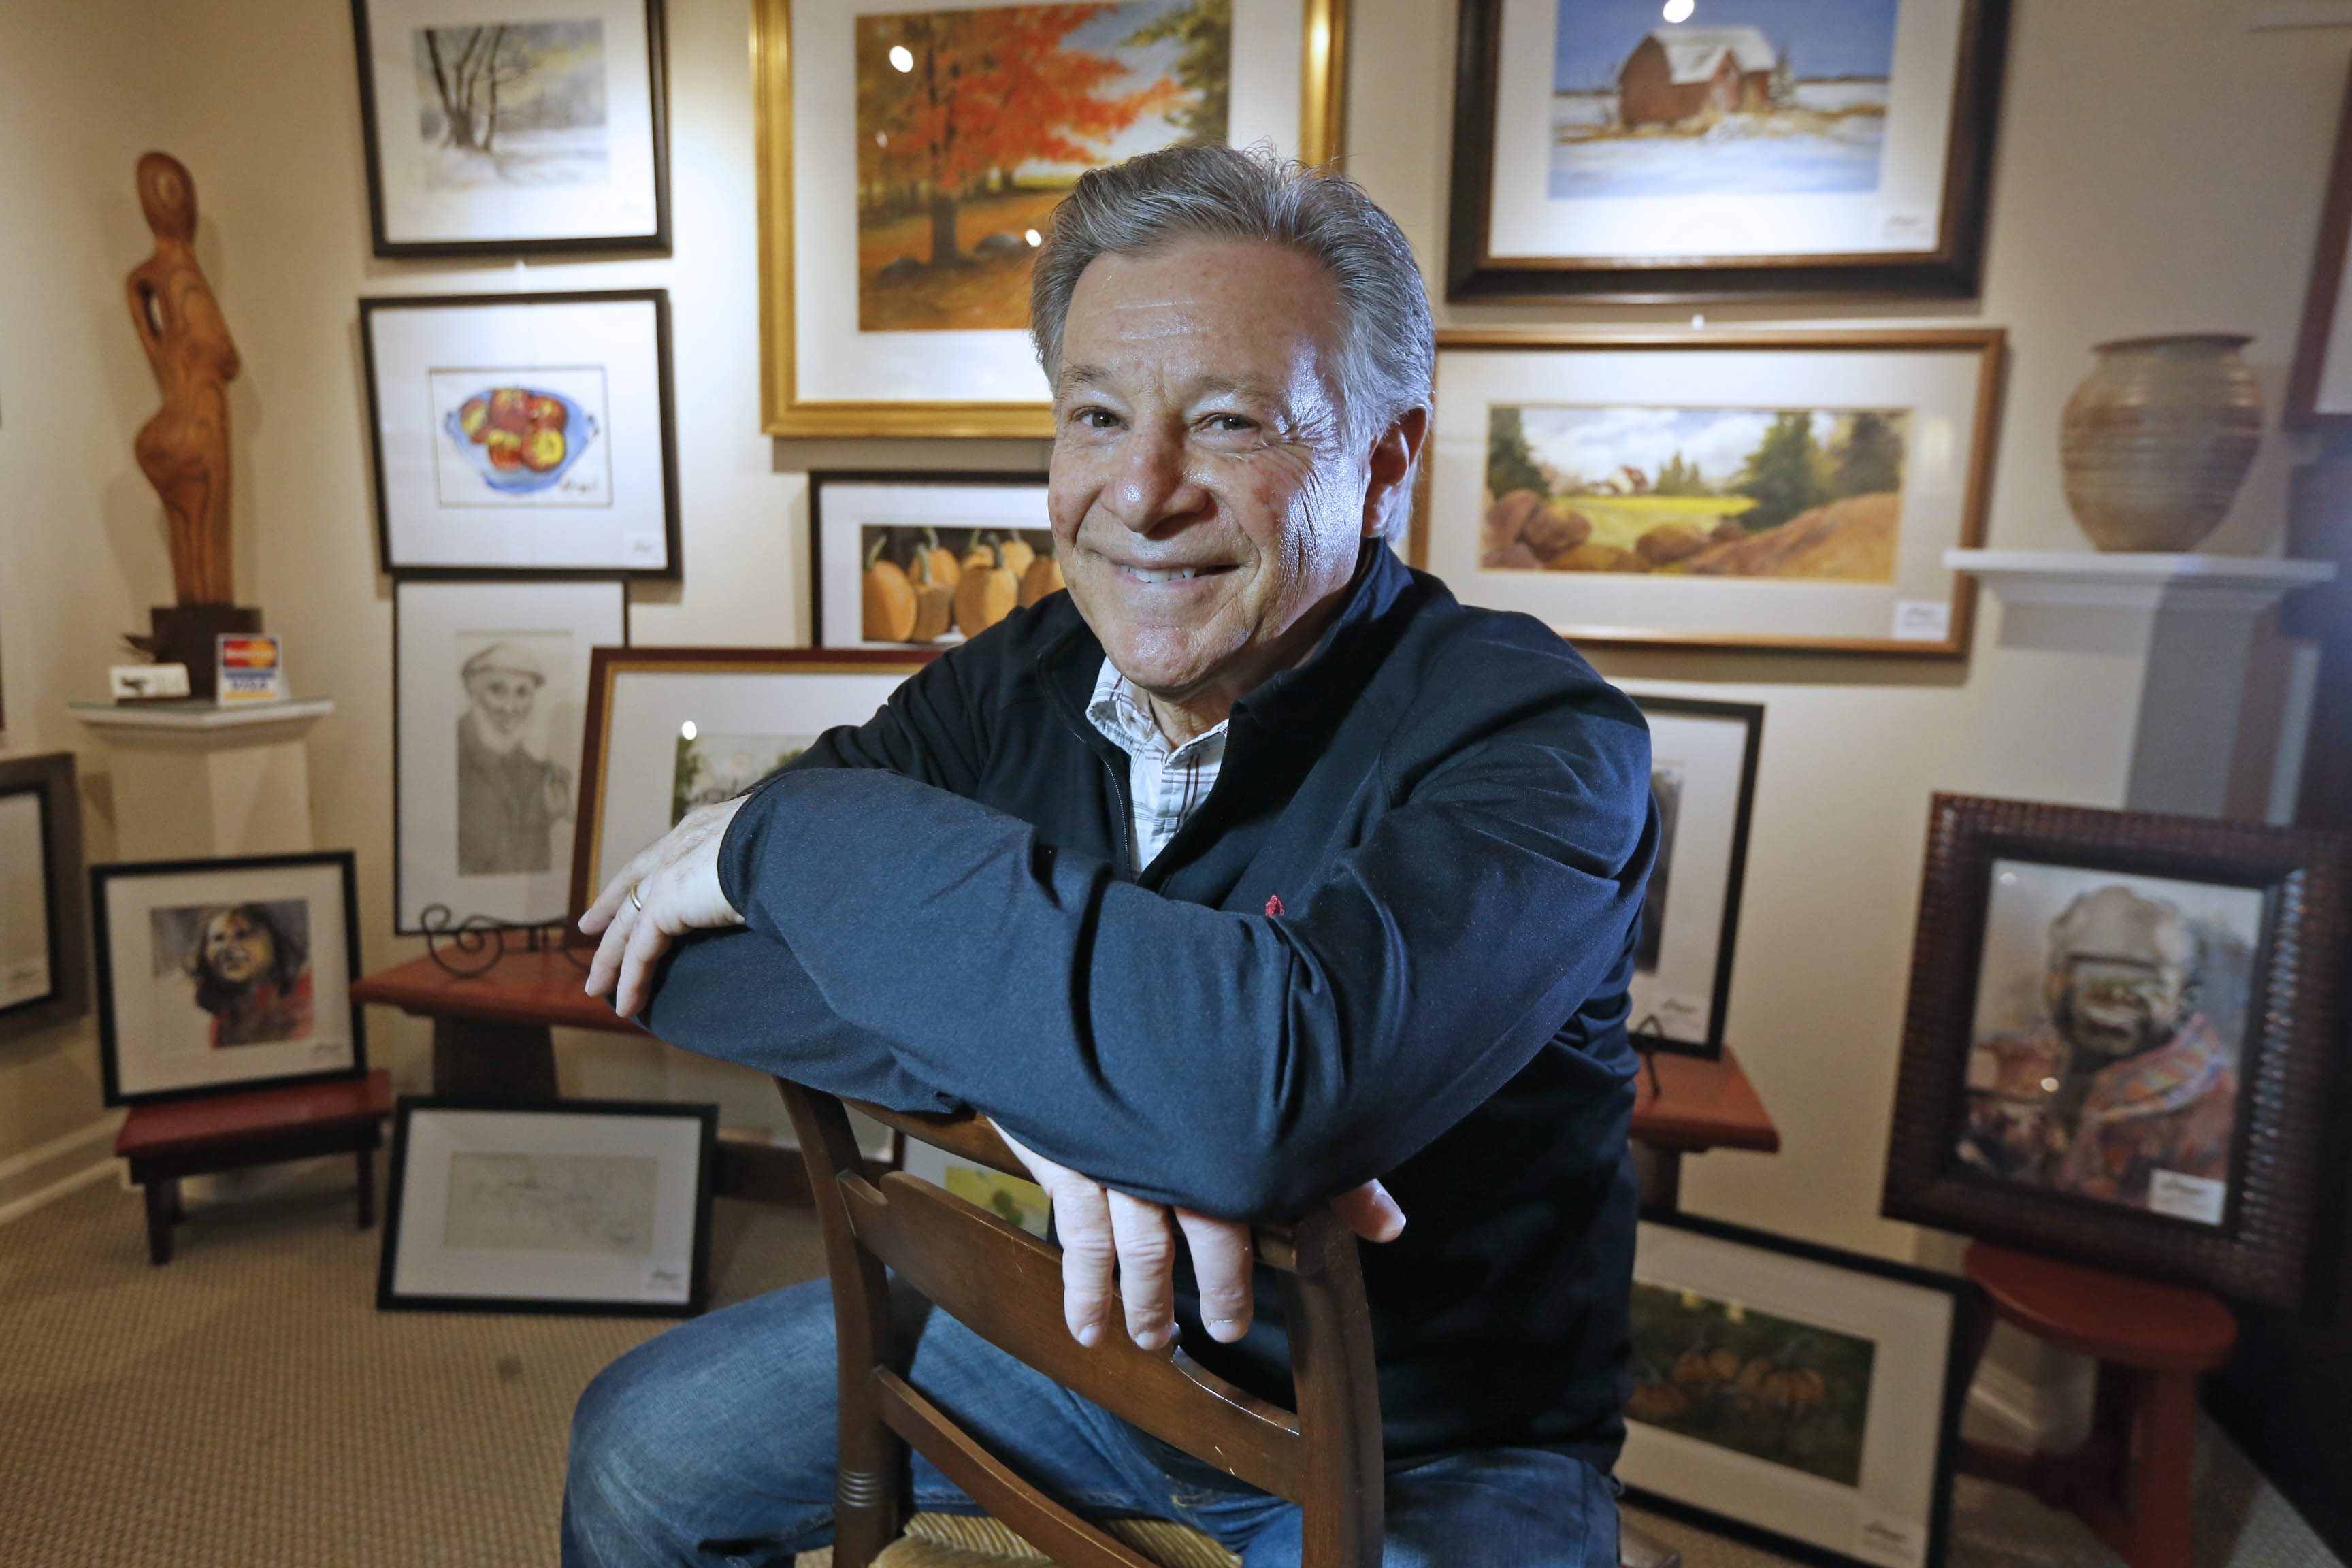 Jack DiMaggio, an artist and retired art teacher, has a gallery in his Lockport home. He'll speak about his art work on Monday evening in the Lockport Public Library.